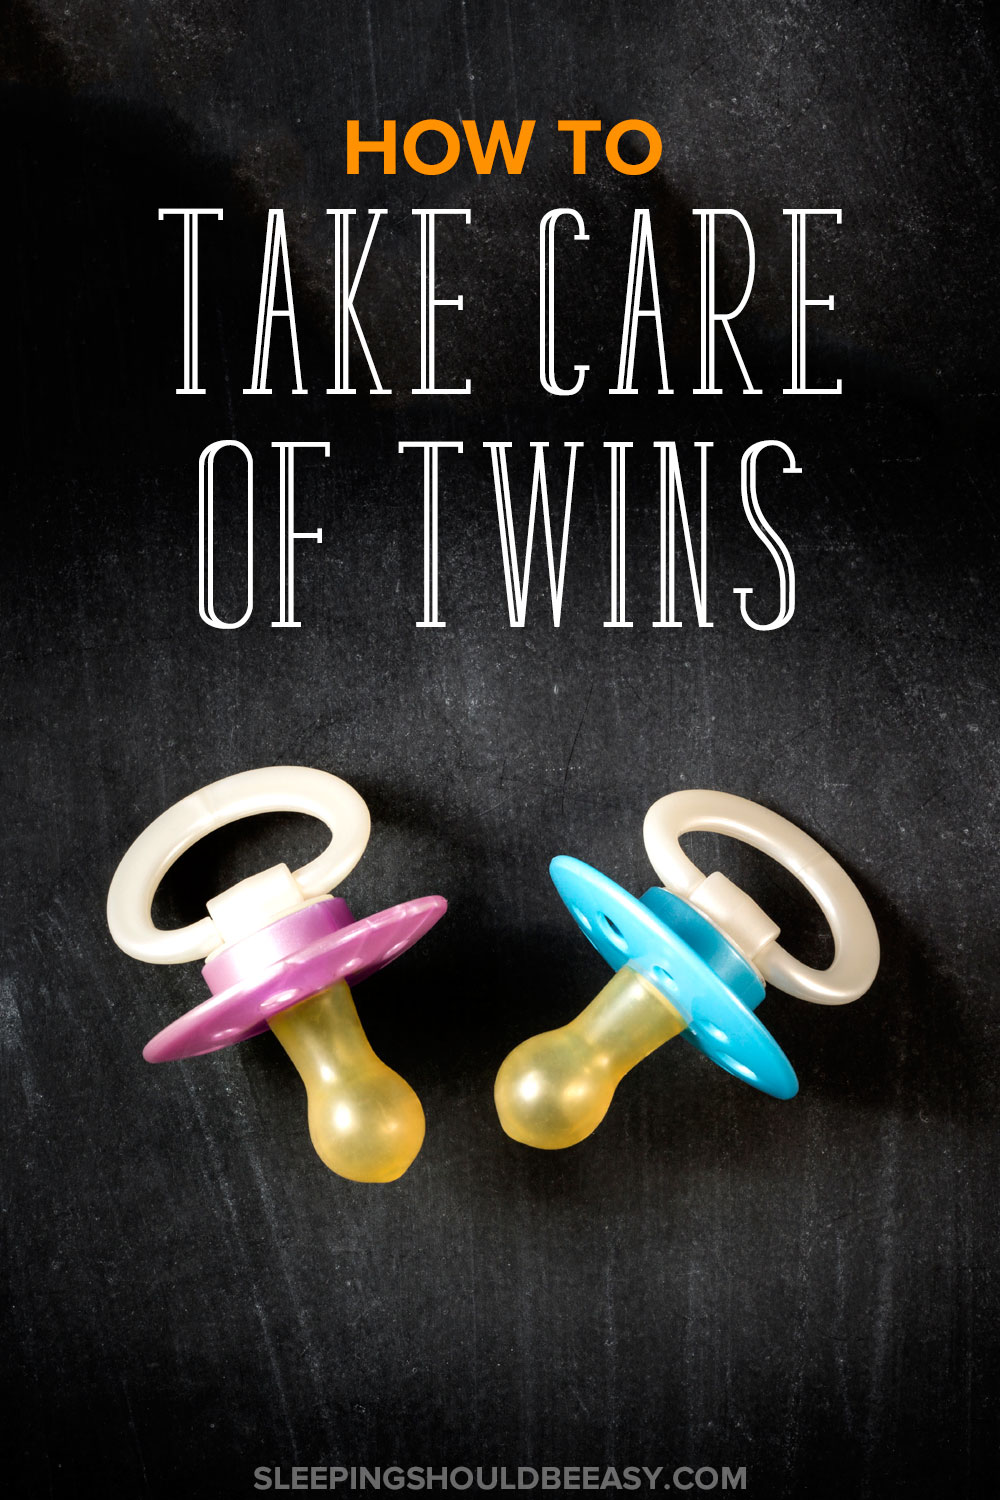 How to take care of twins: Pink and blue twin pacifiers